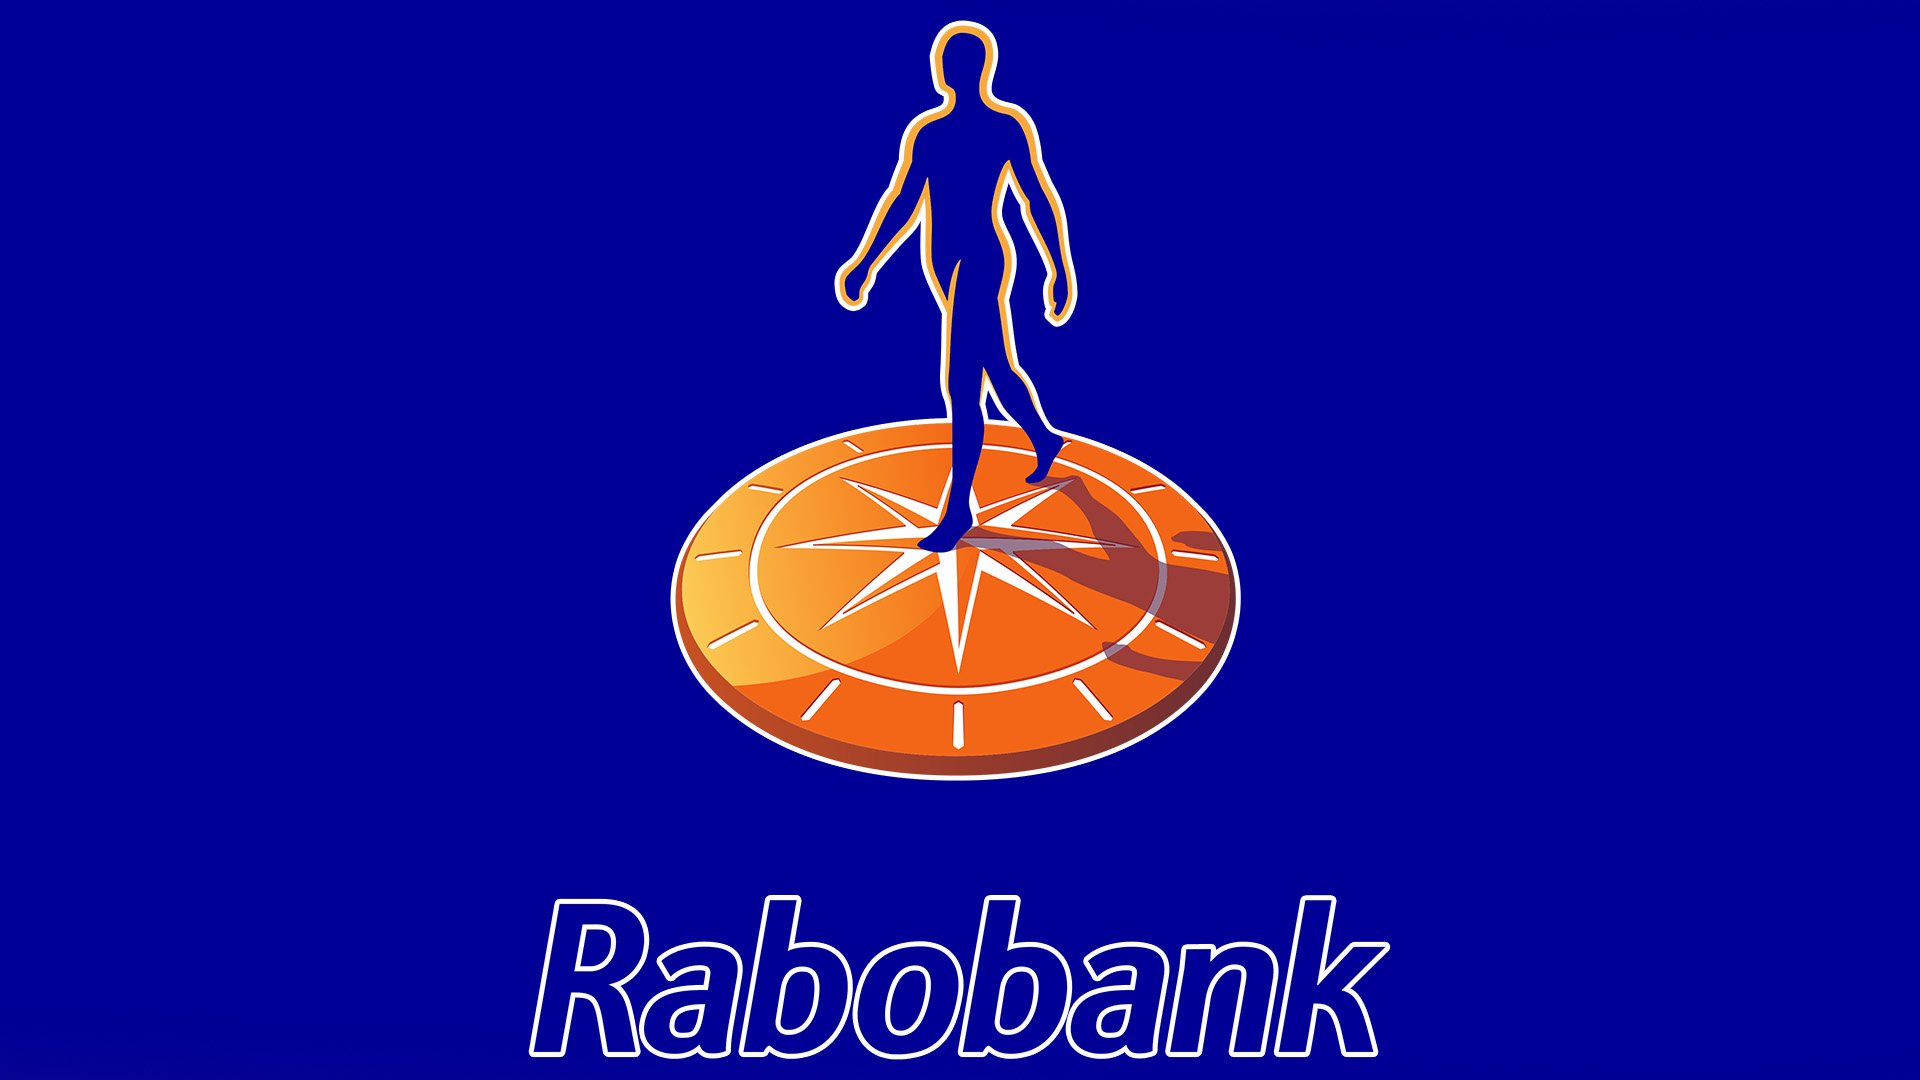 Rabobank logo, Rabobank Symbol, Meaning, History and Evolution